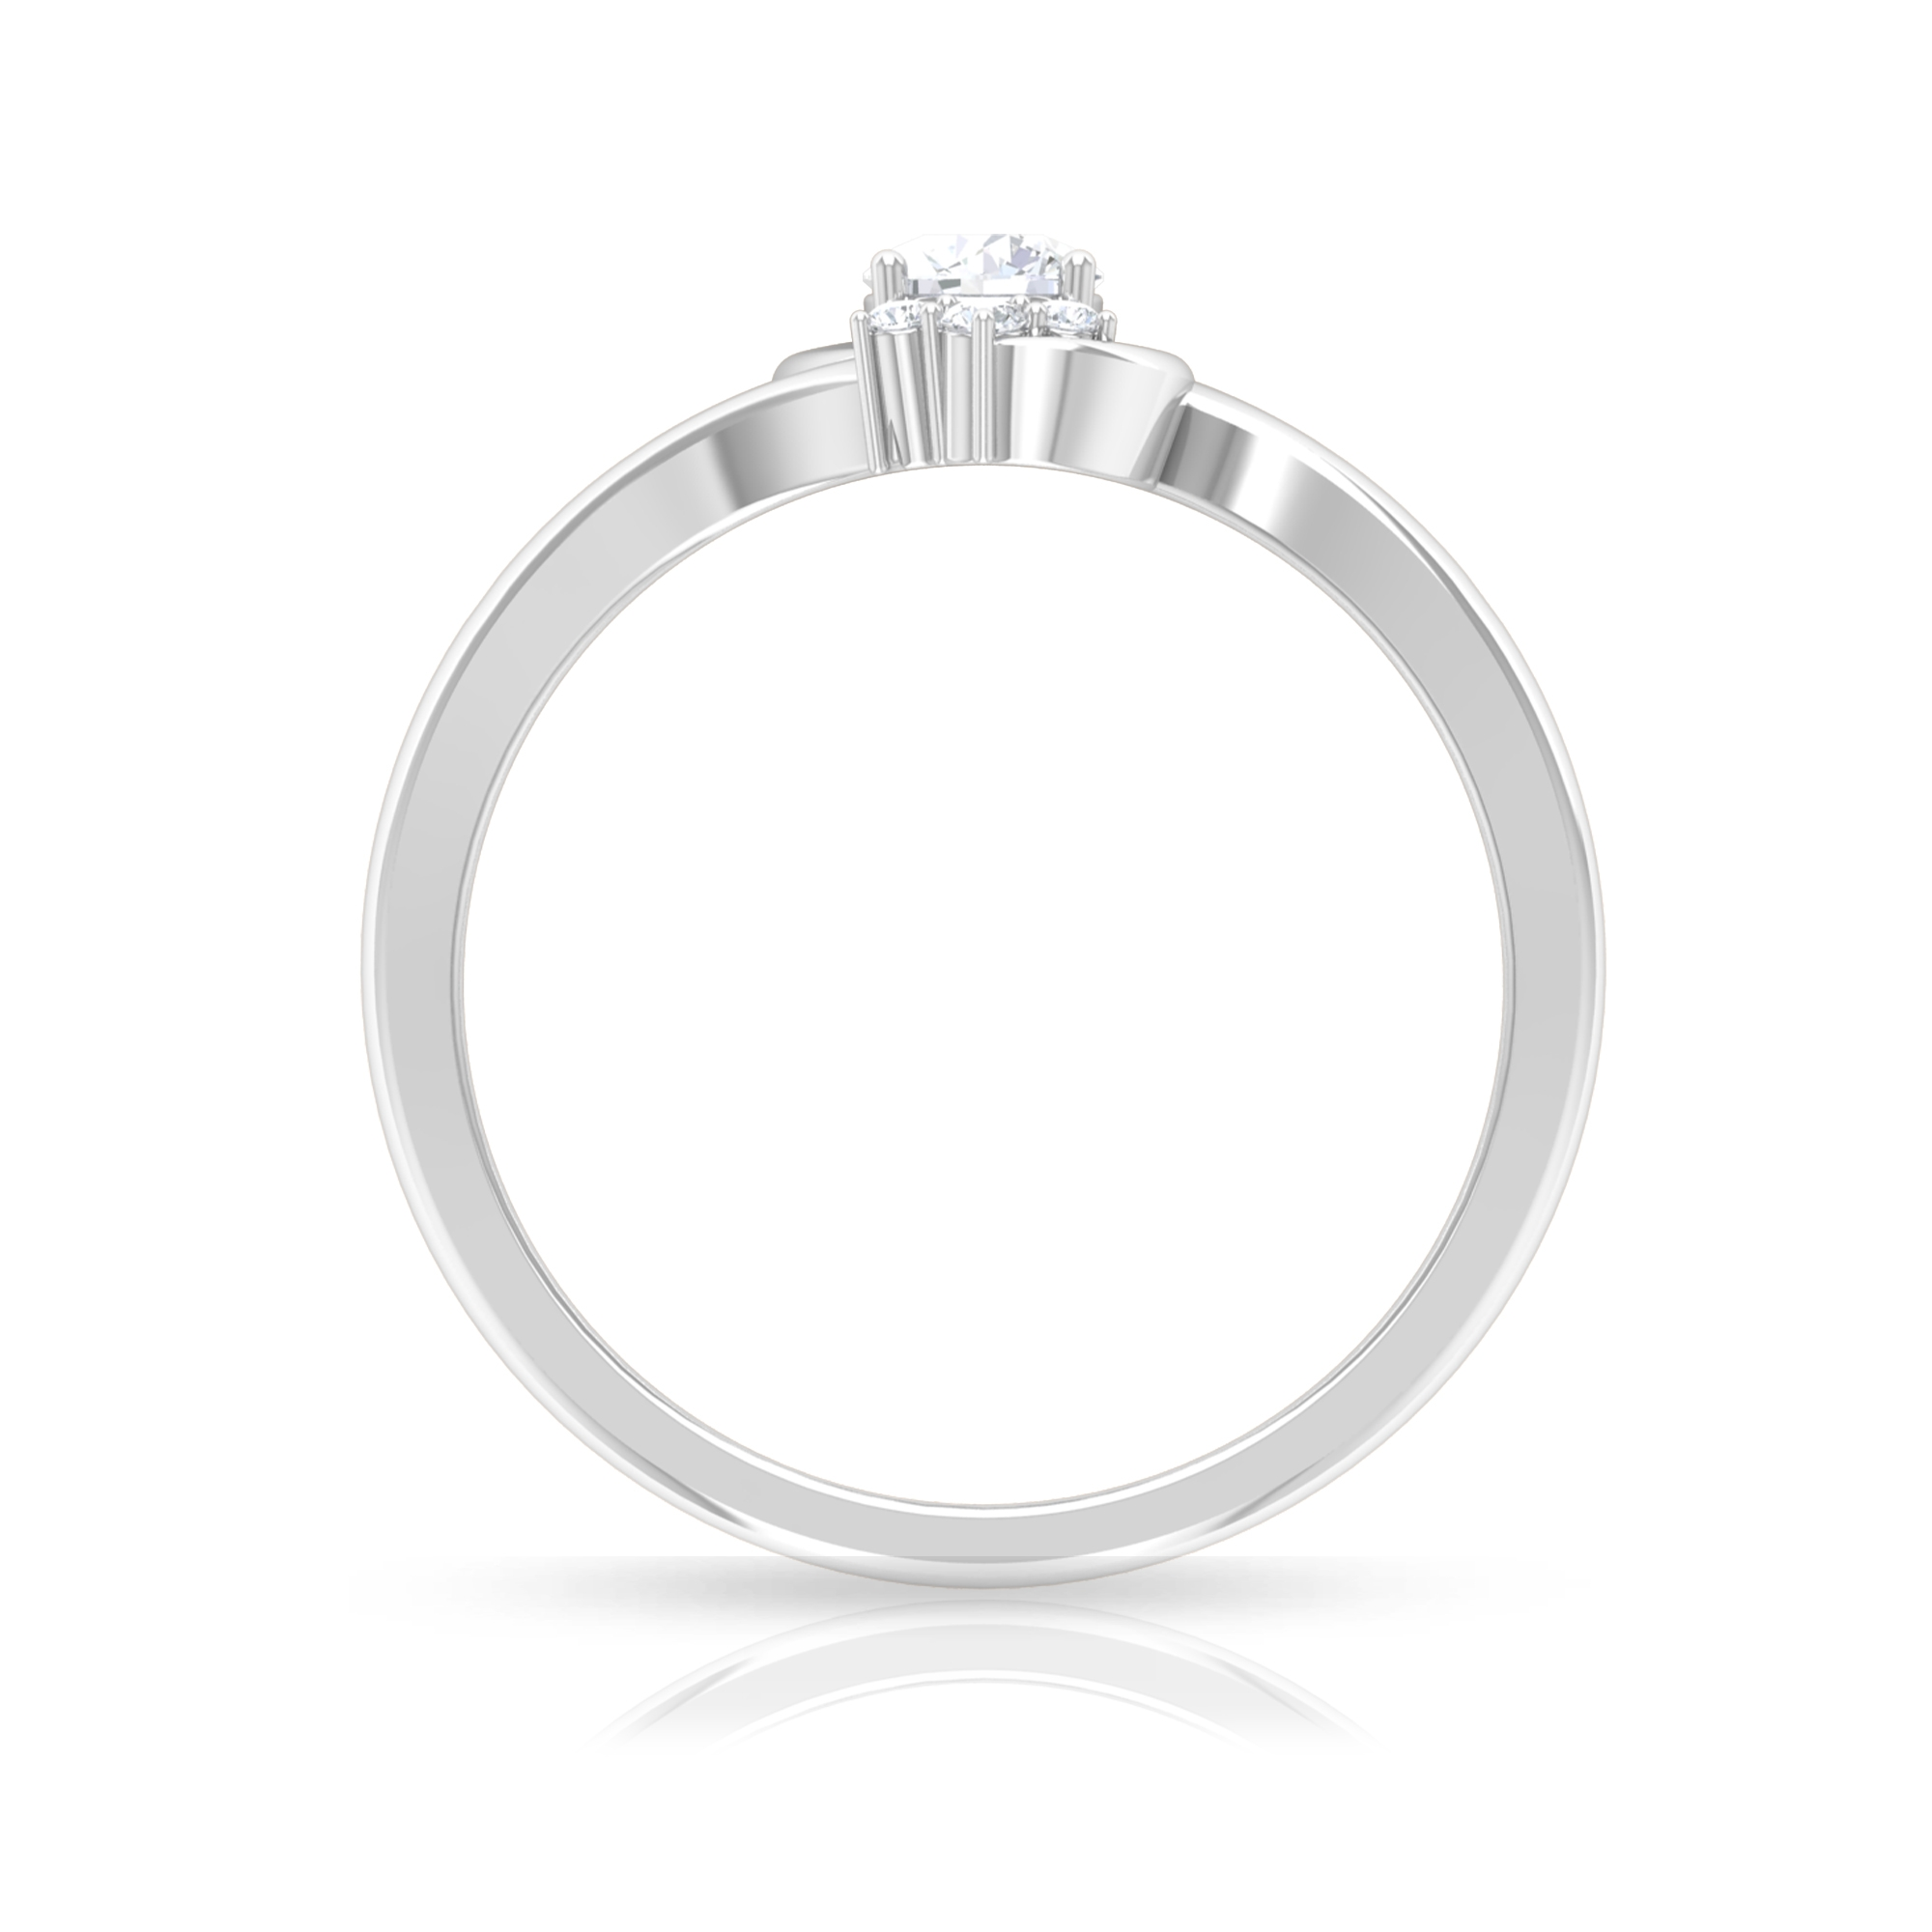 1/4 CT Round Cut Diamond Cluster Bypass Ring in Prong Setting